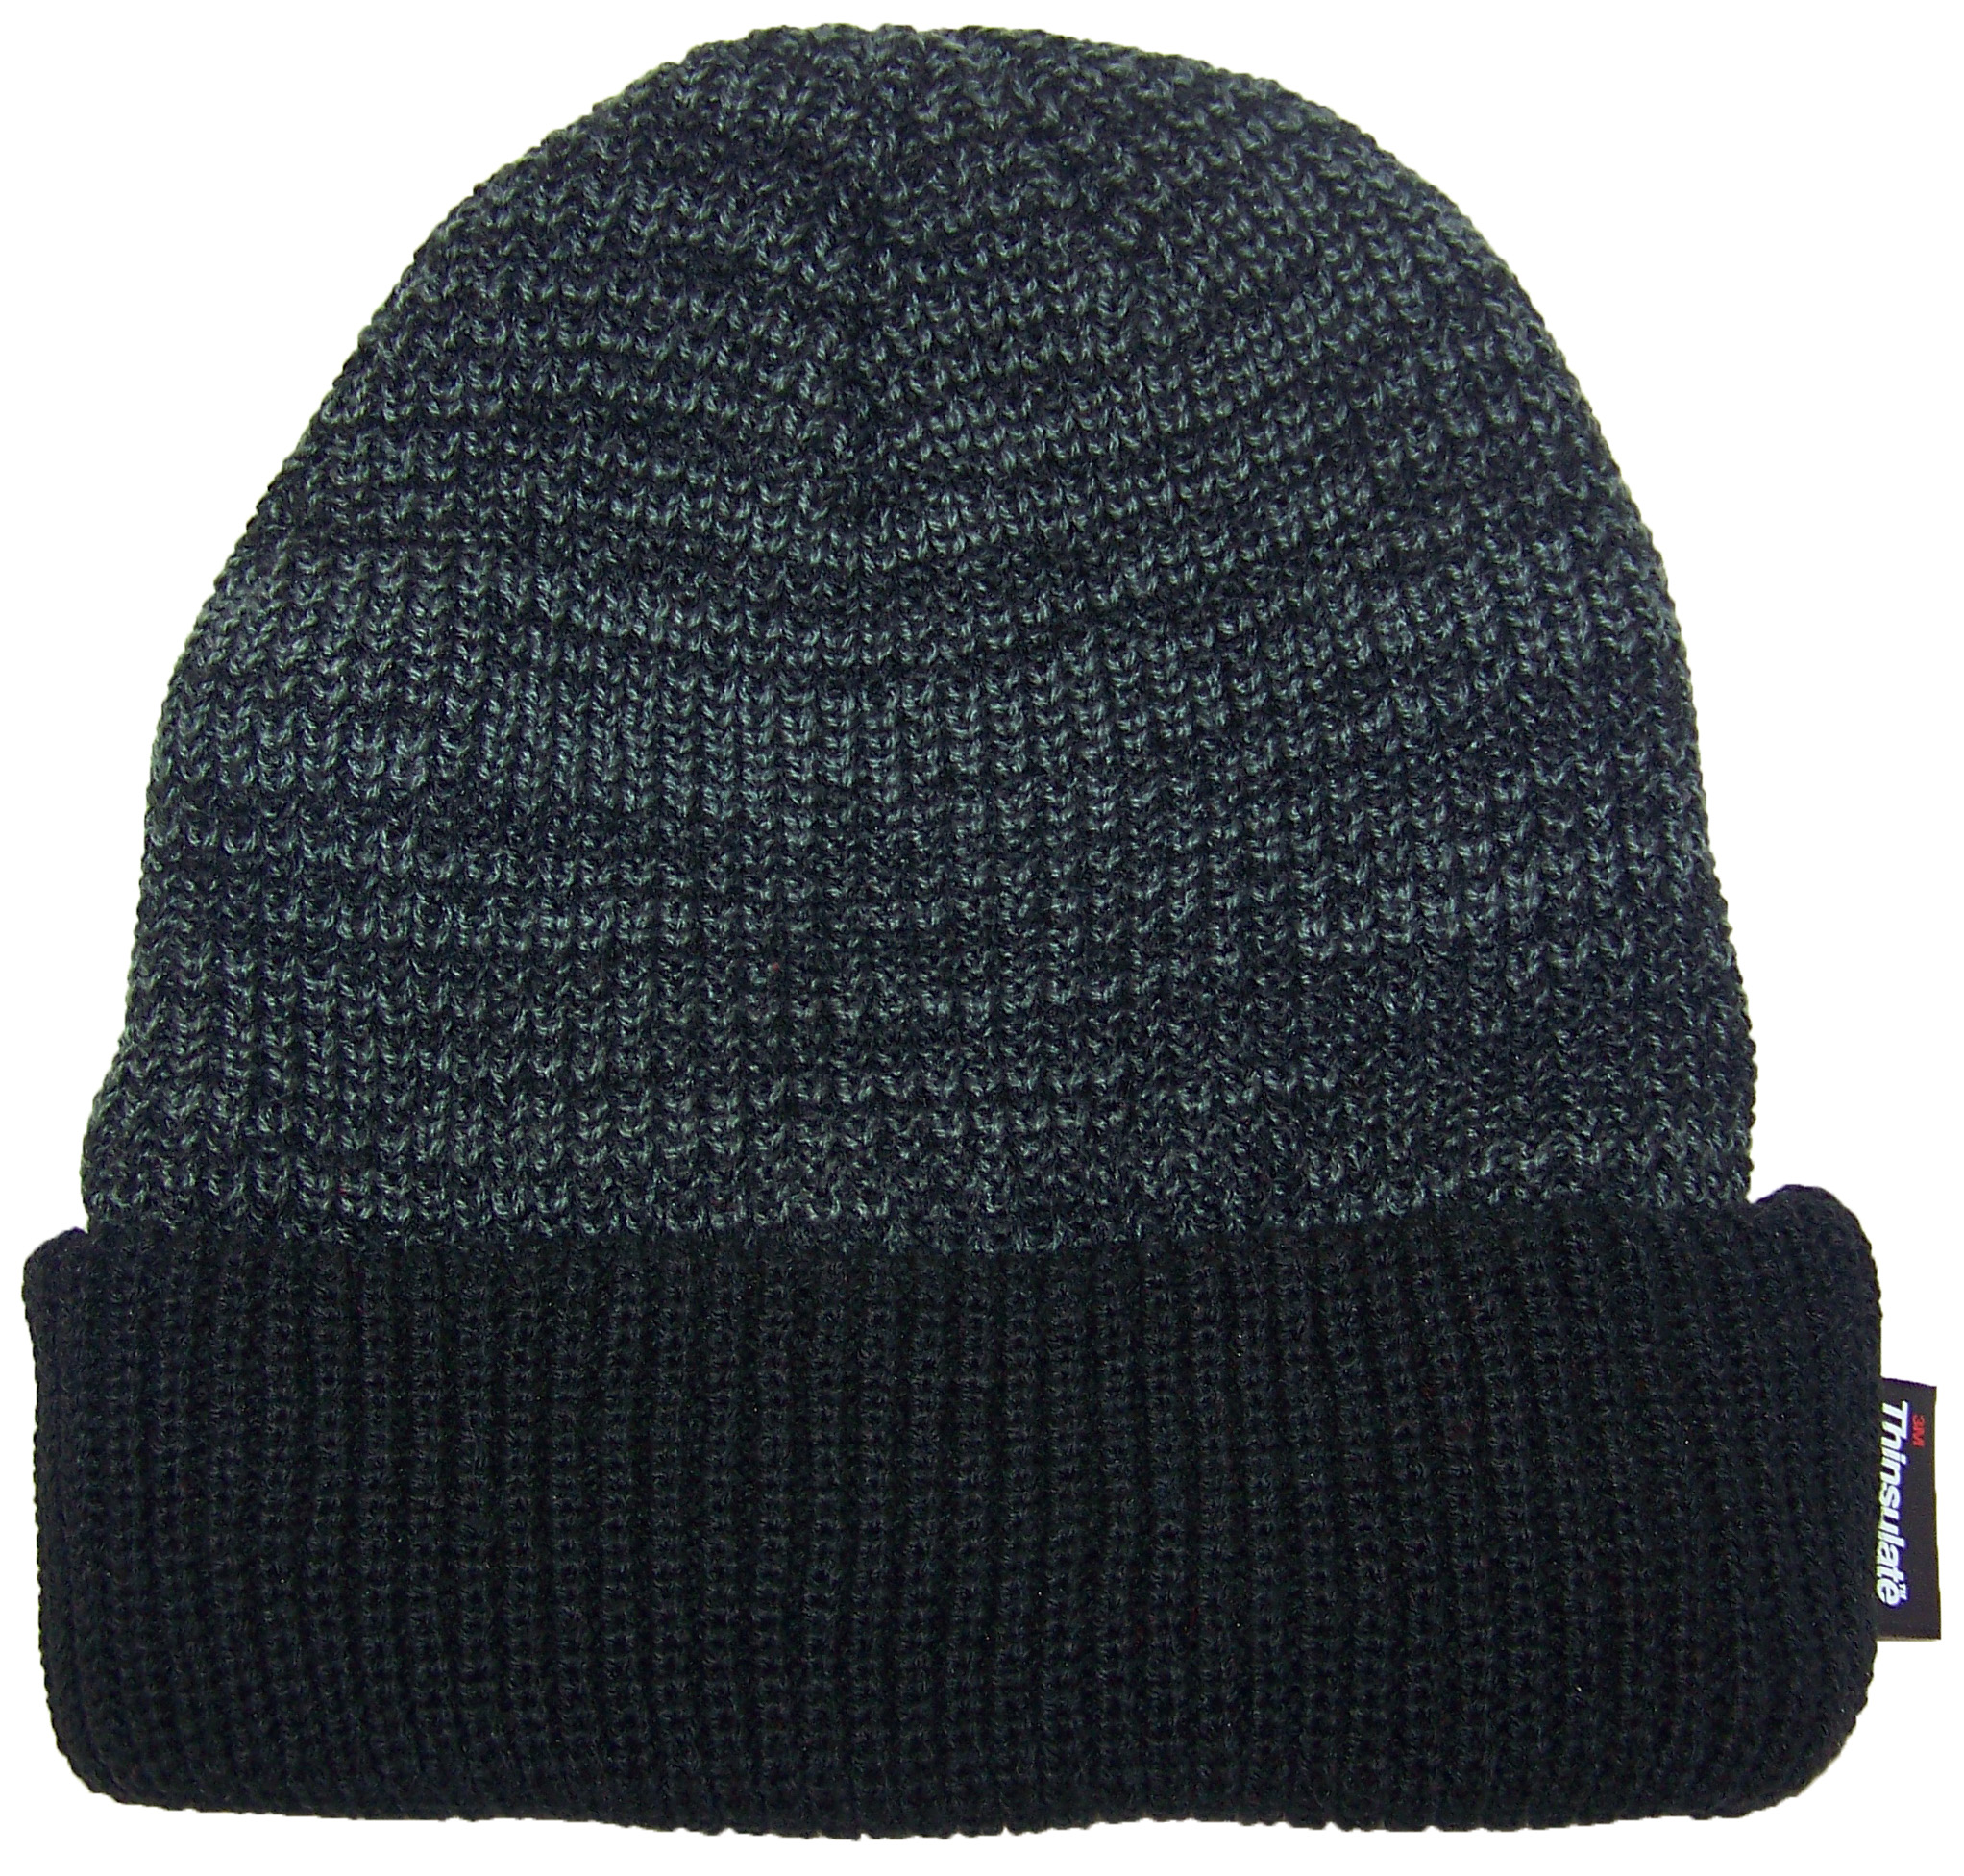 Best Winter Hats 40 Gram Thinsulate Insulated Cuffed Winter Hat (One ... fe78ab1ac97f